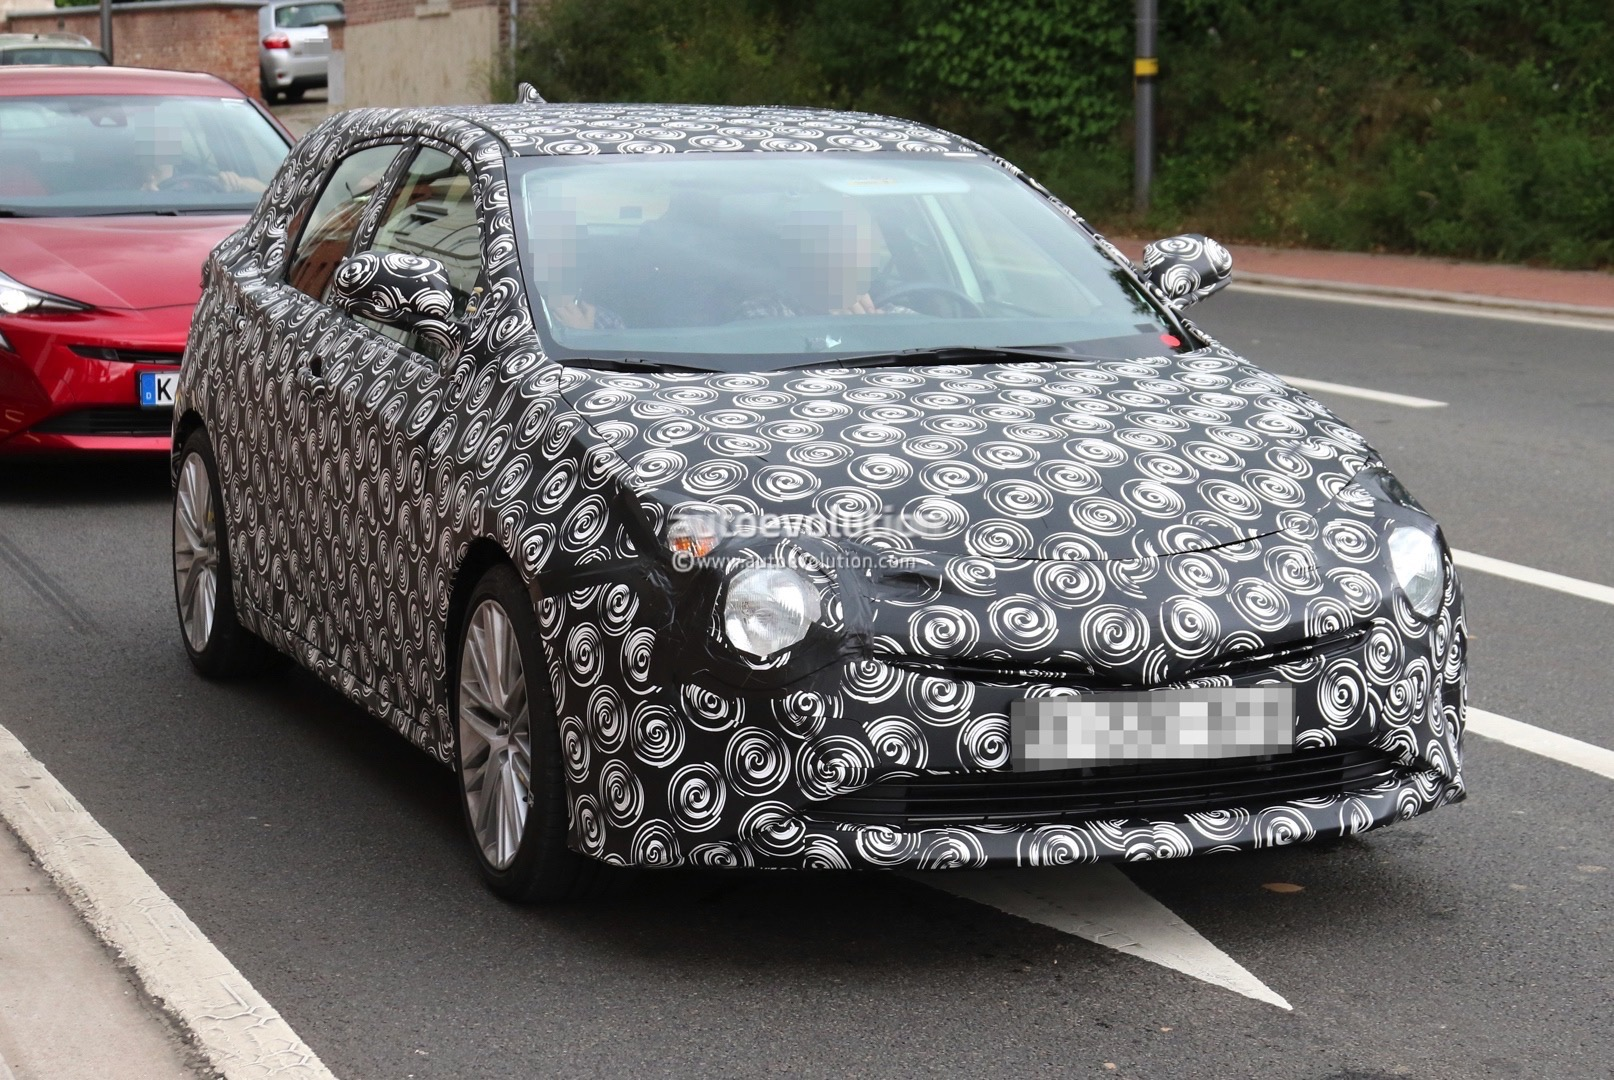 2019 Porsche 911 Turbo S >> 2019 Toyota Corolla Hatchback Spied With Production Body ...